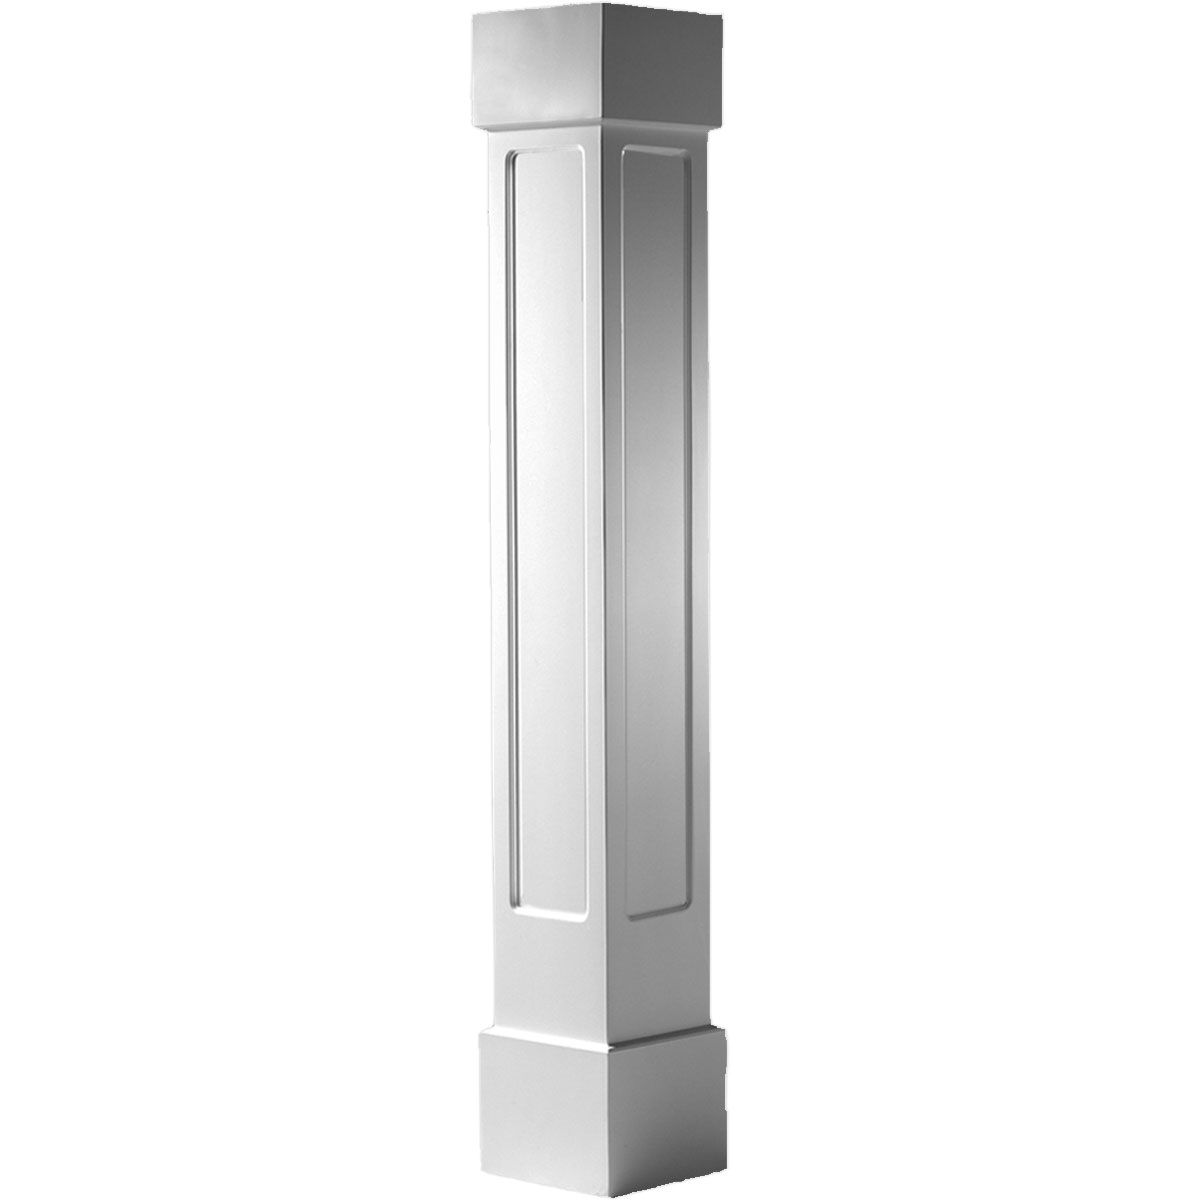 Square Column Trim : Craftsman classic square non tapered recessed panel column